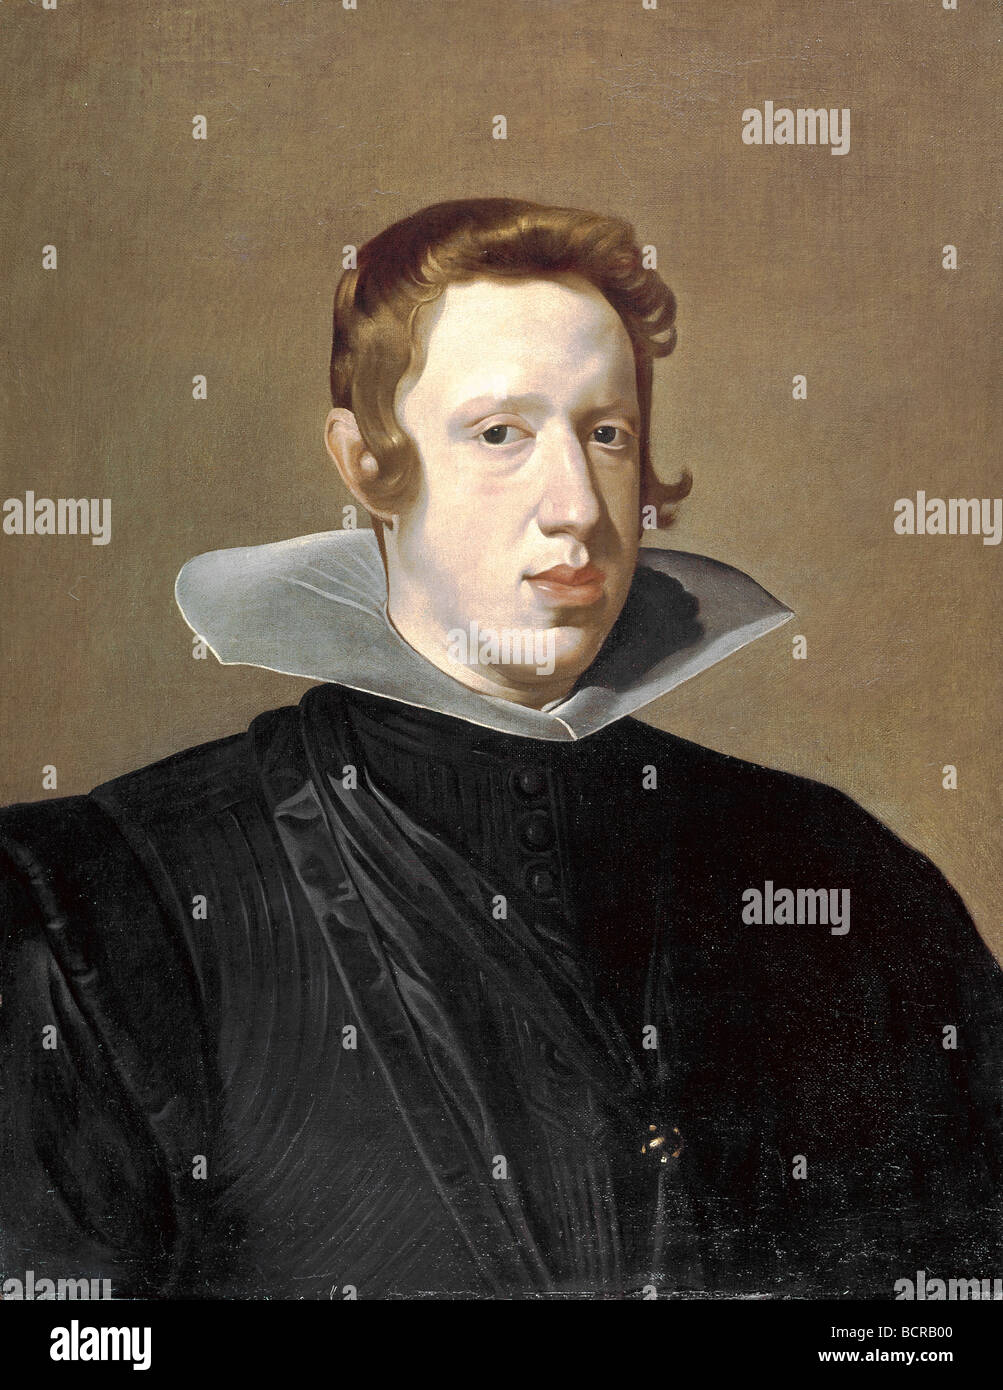 Philip IV by Diego Velazquez, 1599-1660 - Stock Image